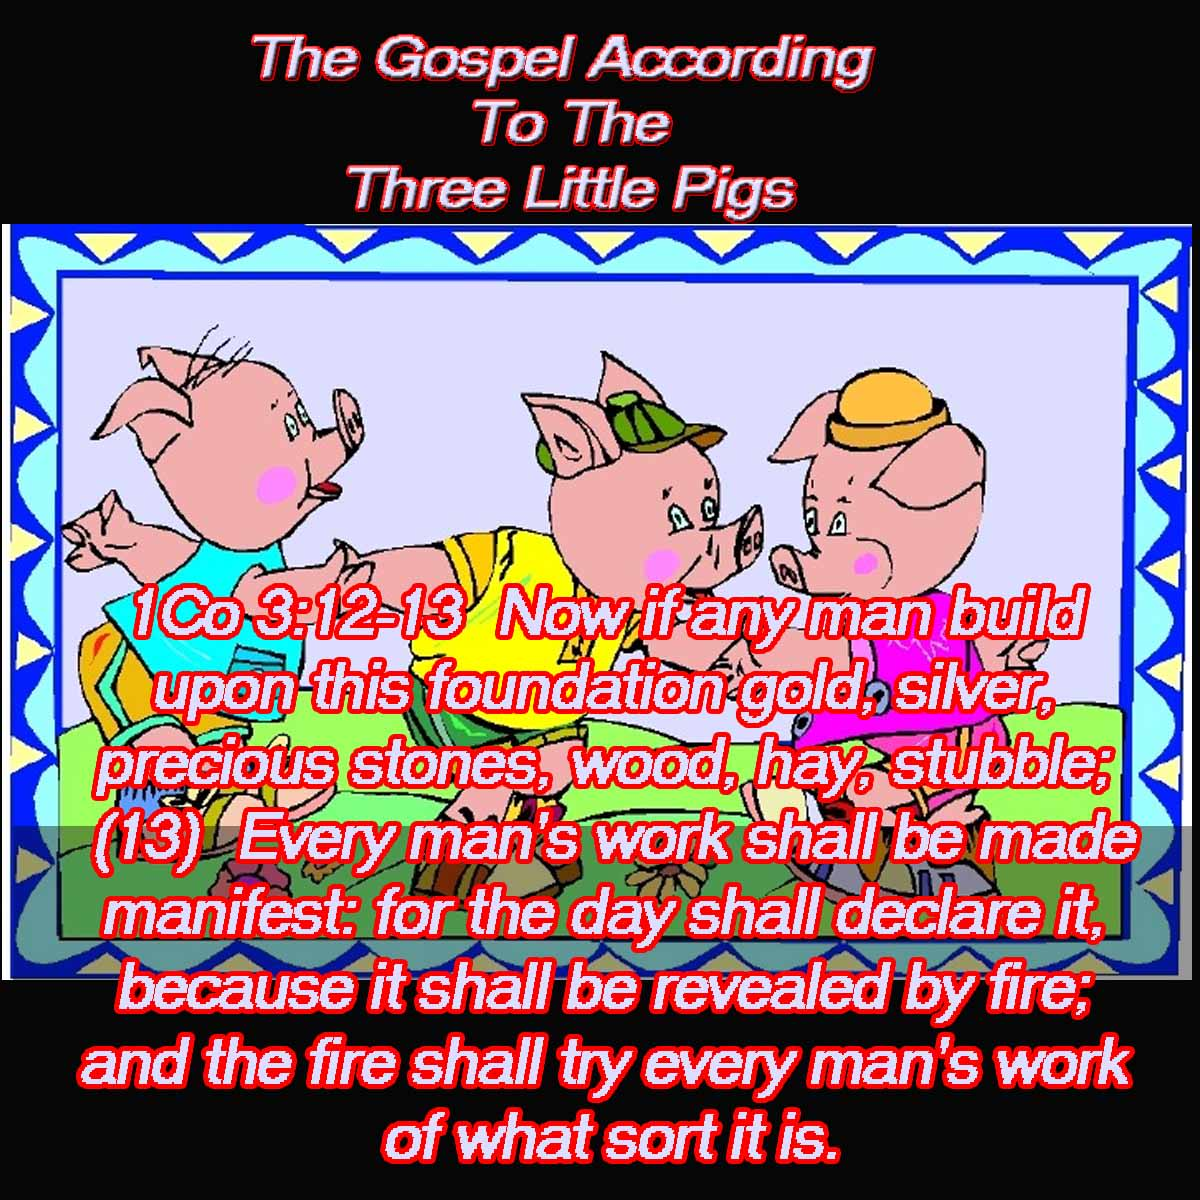 1Co 3:12-13  Now if any man build upon this foundation gold, silver, precious stones, wood, hay, stubble;  (13)  Every man's work shall be made manifest: for the day shall declare it, because it shall be revealed by fire; and the fire shall try every